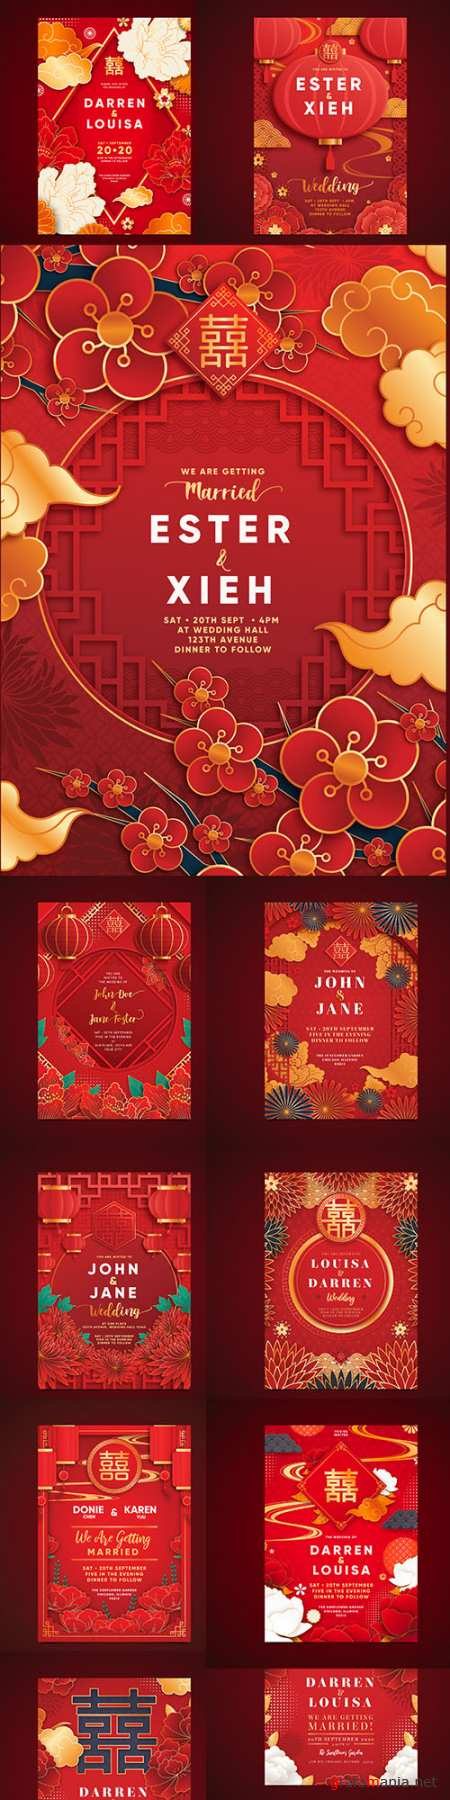 Chinese style wedding invitations realistic design